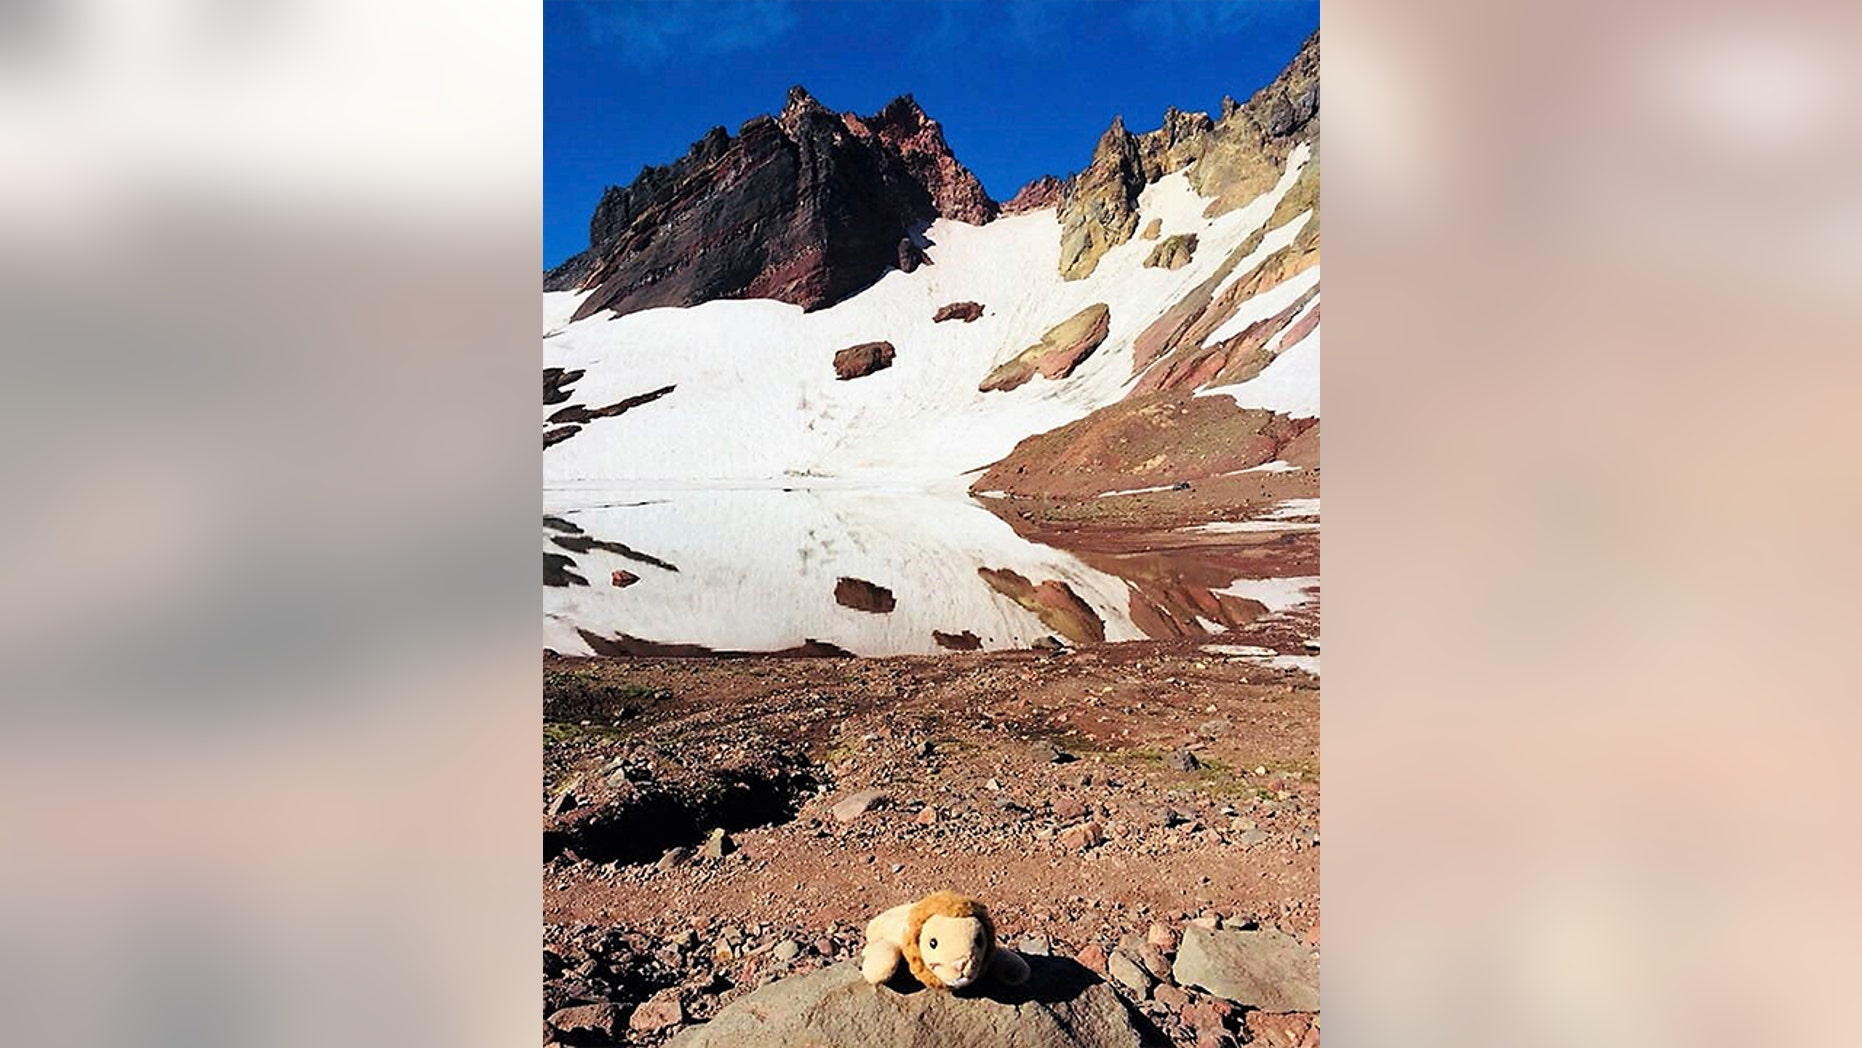 This photo provided by Holly Spaman shows a small stuffed lion she found along the Broken Top Trail near Bend, Ore., July 16, 2018. A little girl who lost the lion on a hike in the Oregon backcountry was reunited with her favorite toy over the weekend after a community effort to identify her.